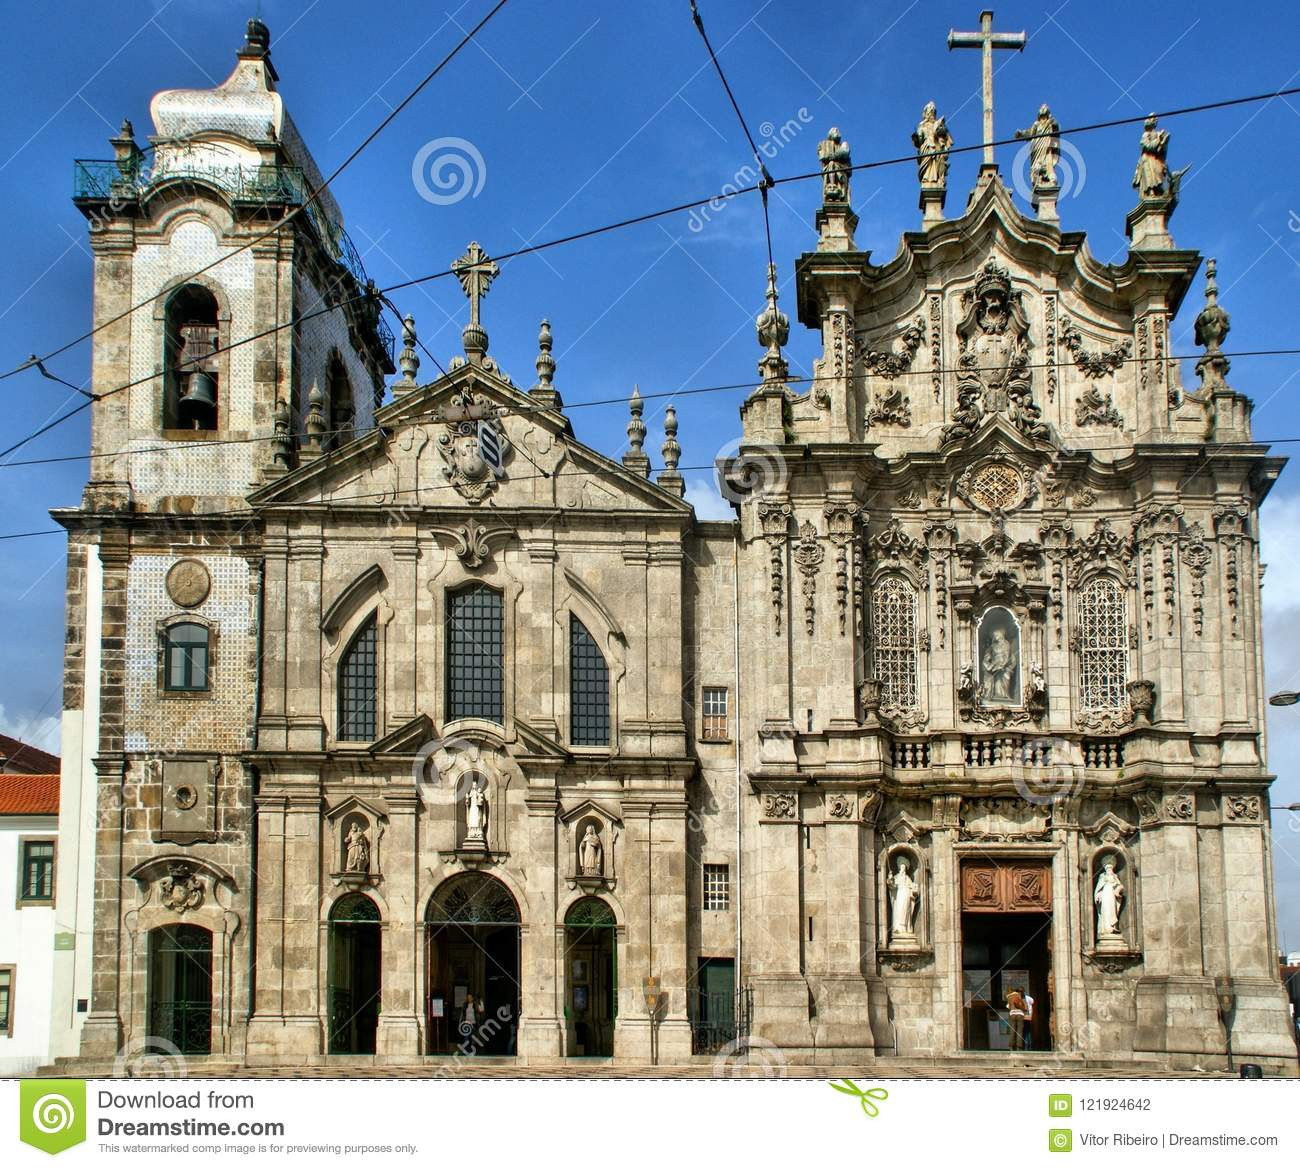 Facades of the churches of Carmo and Carmelitas in Porto